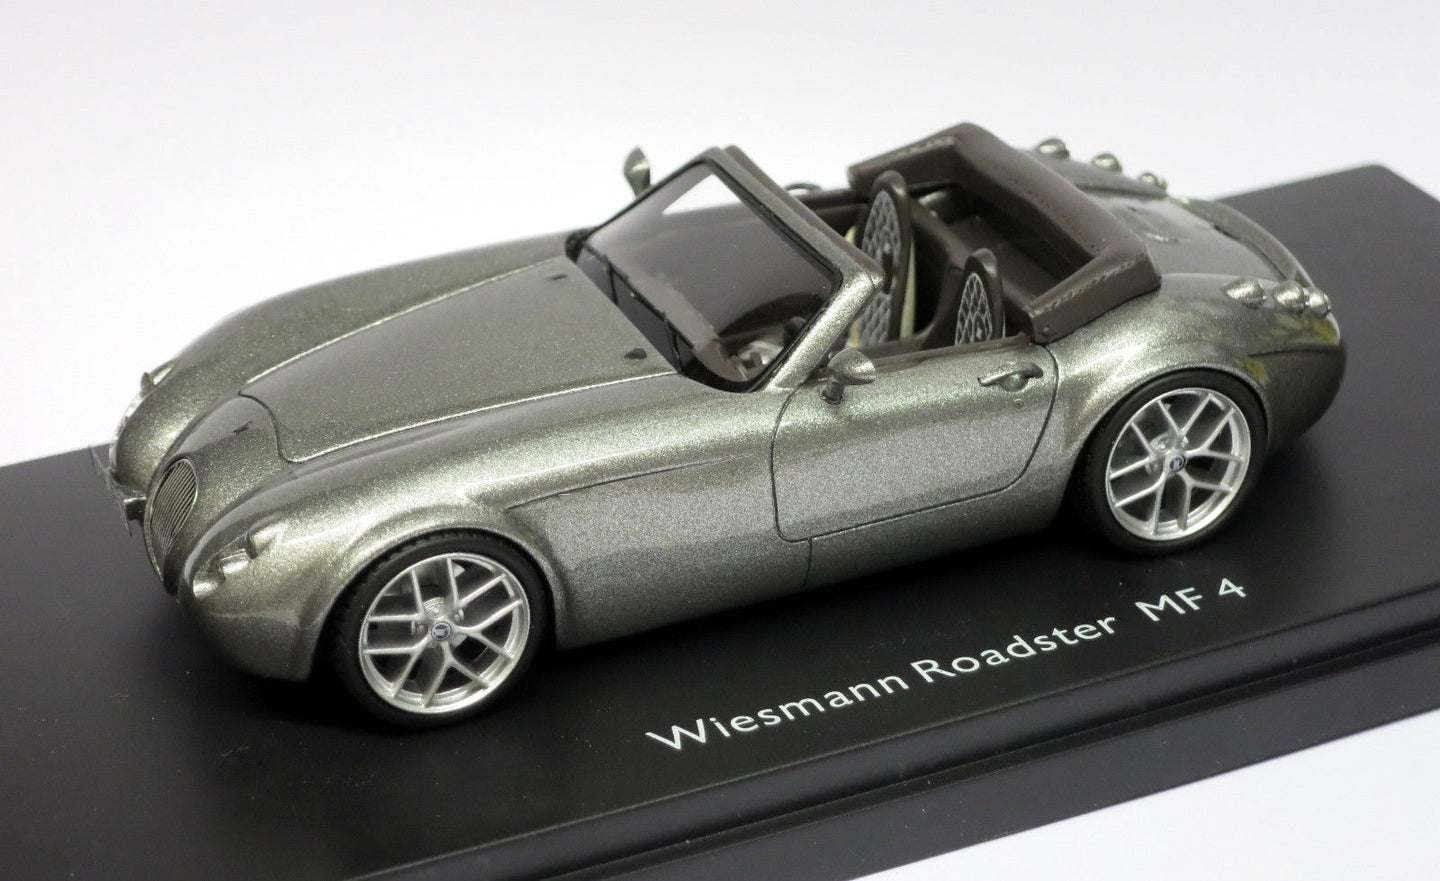 Schuco 1/43 Wiesmann Roadster MF 5 Grey Metallic 450888500